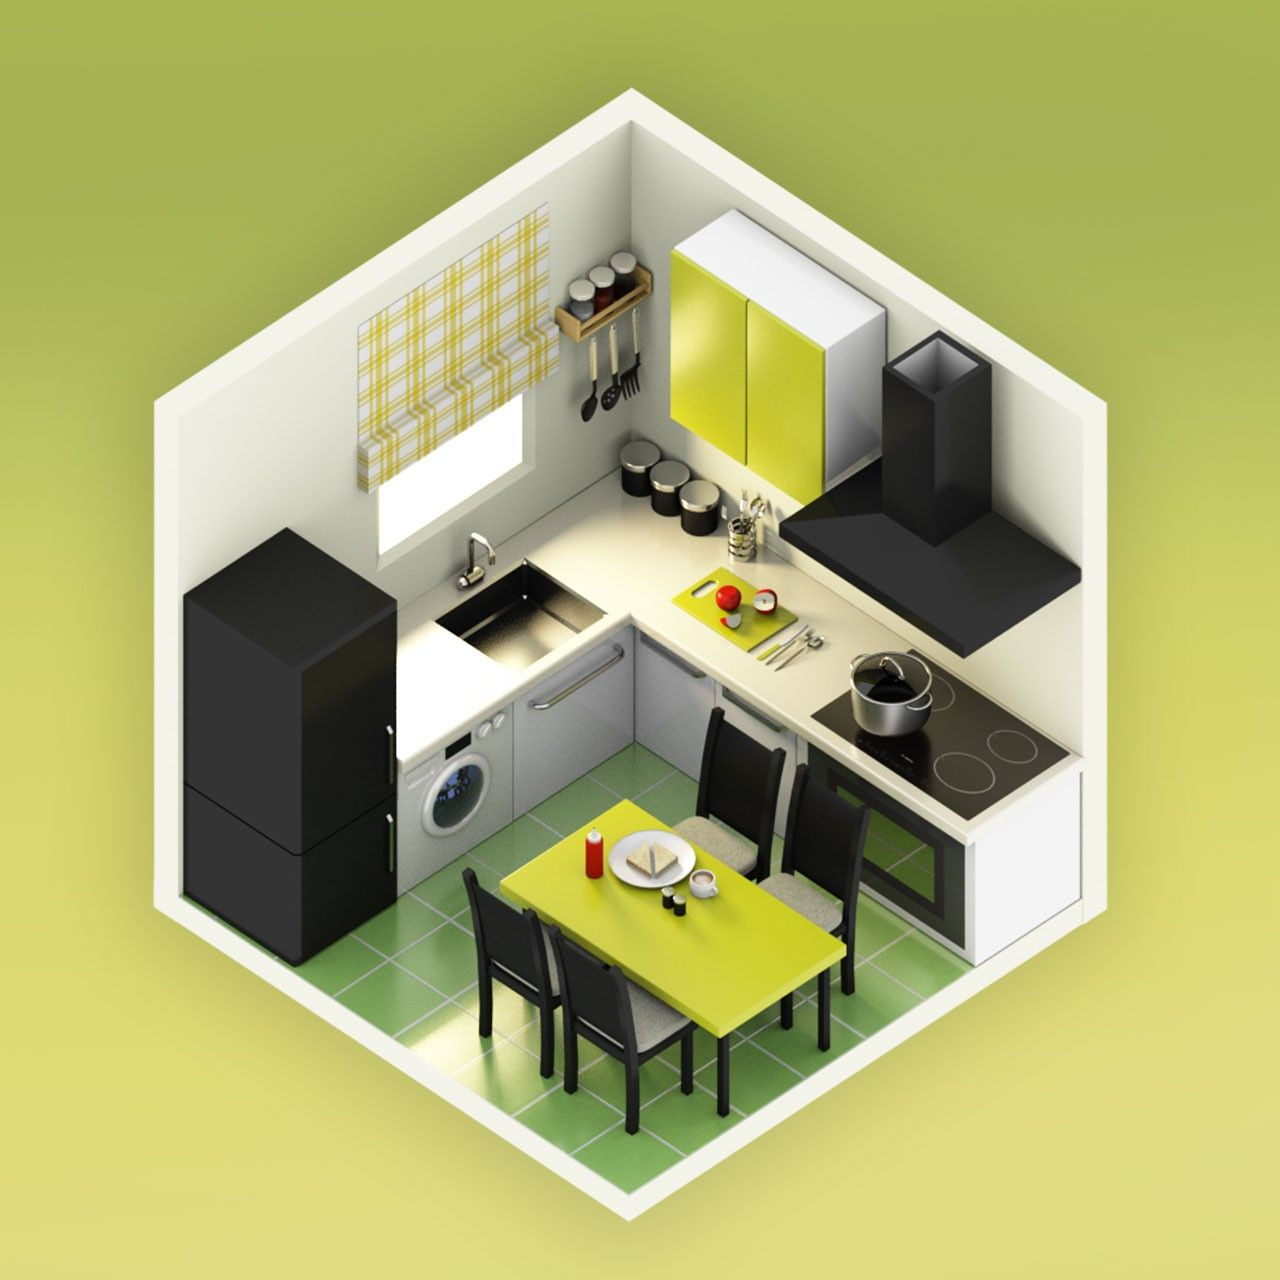 Isometric 3d Model Of Kitchen Kitchen Design Small Design Game Room Design